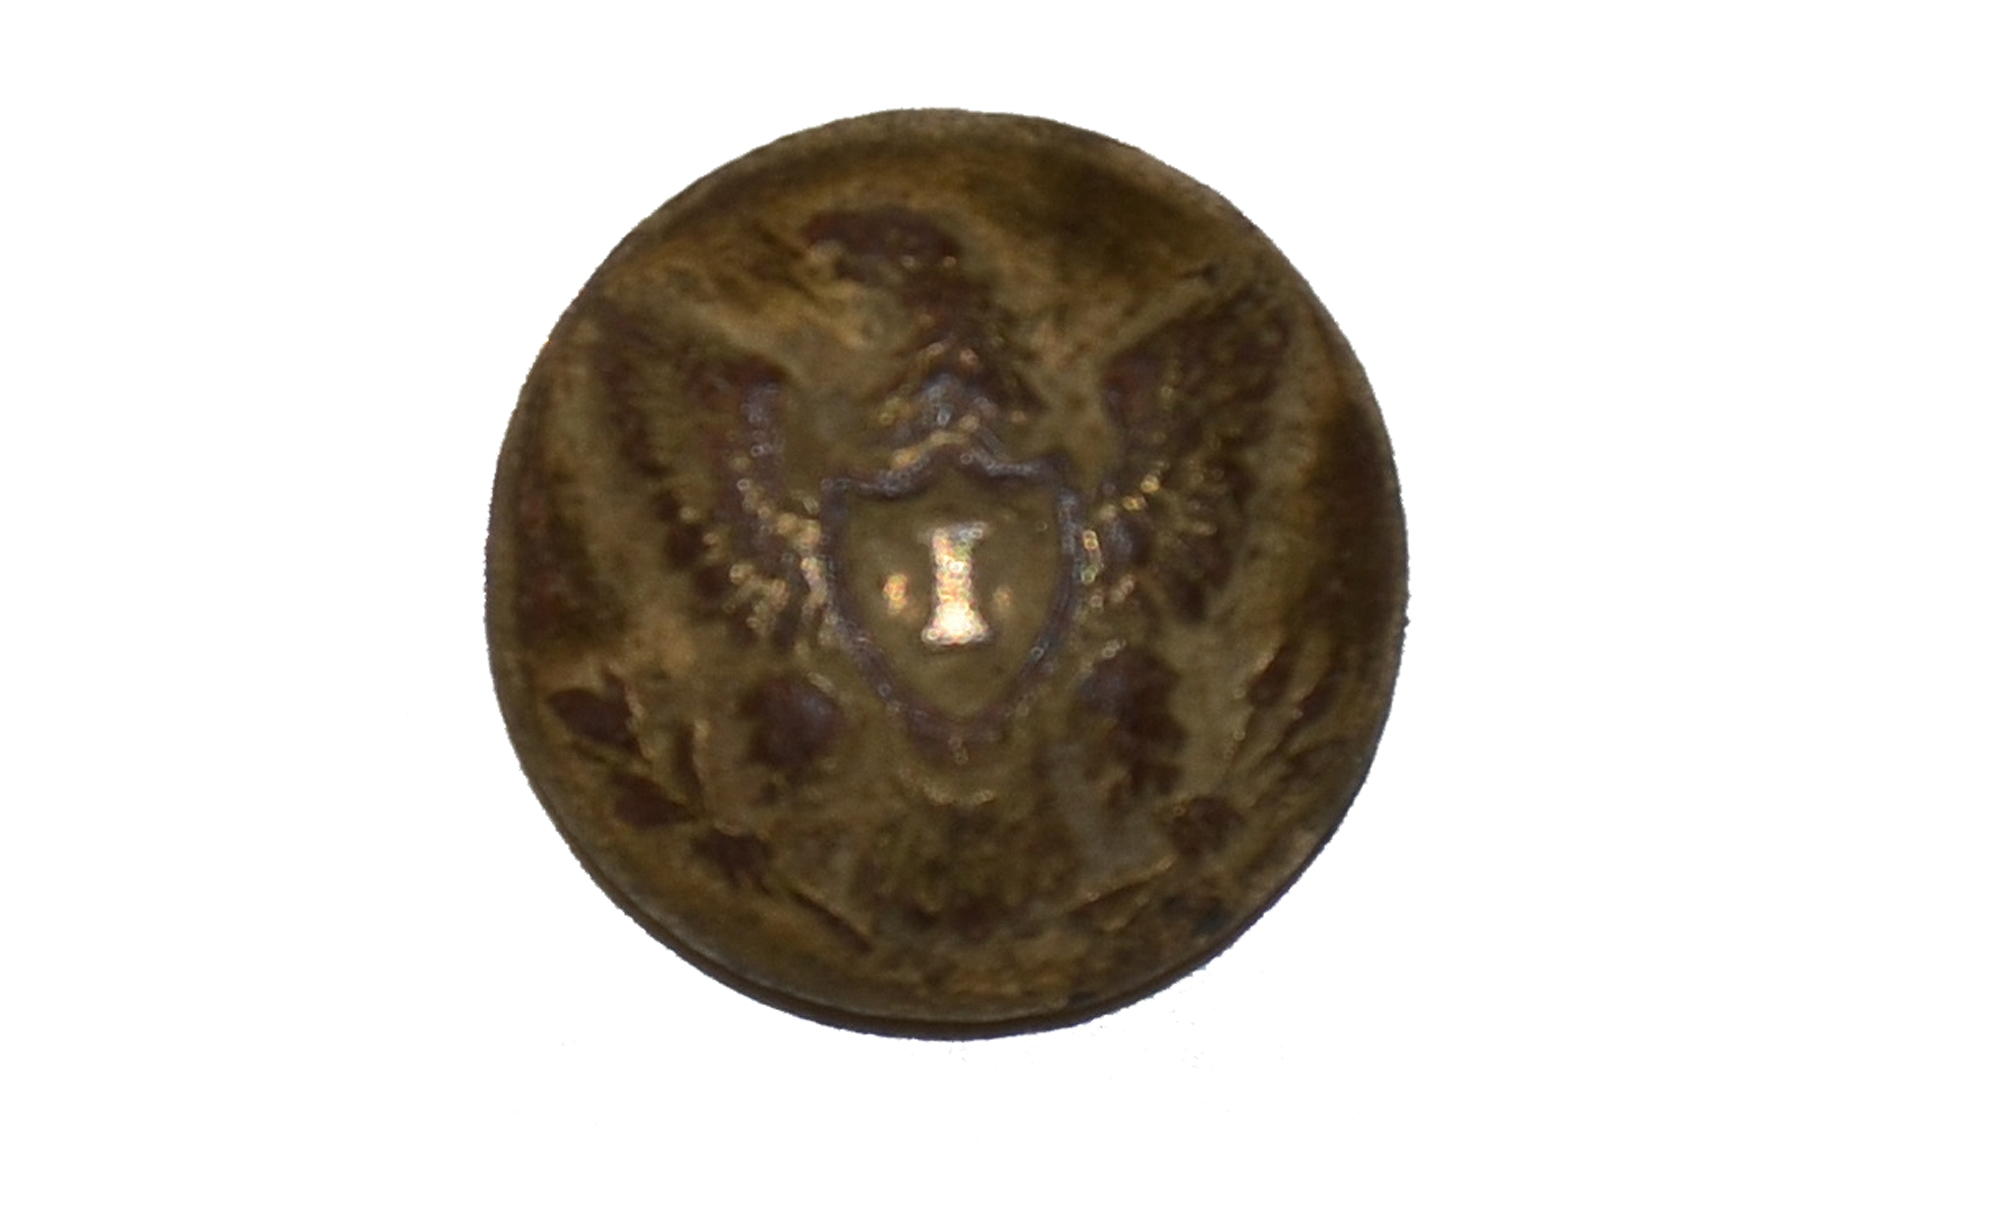 US INFANTRY CUFF BUTTON RECOVERED FROM GETTYSBURG